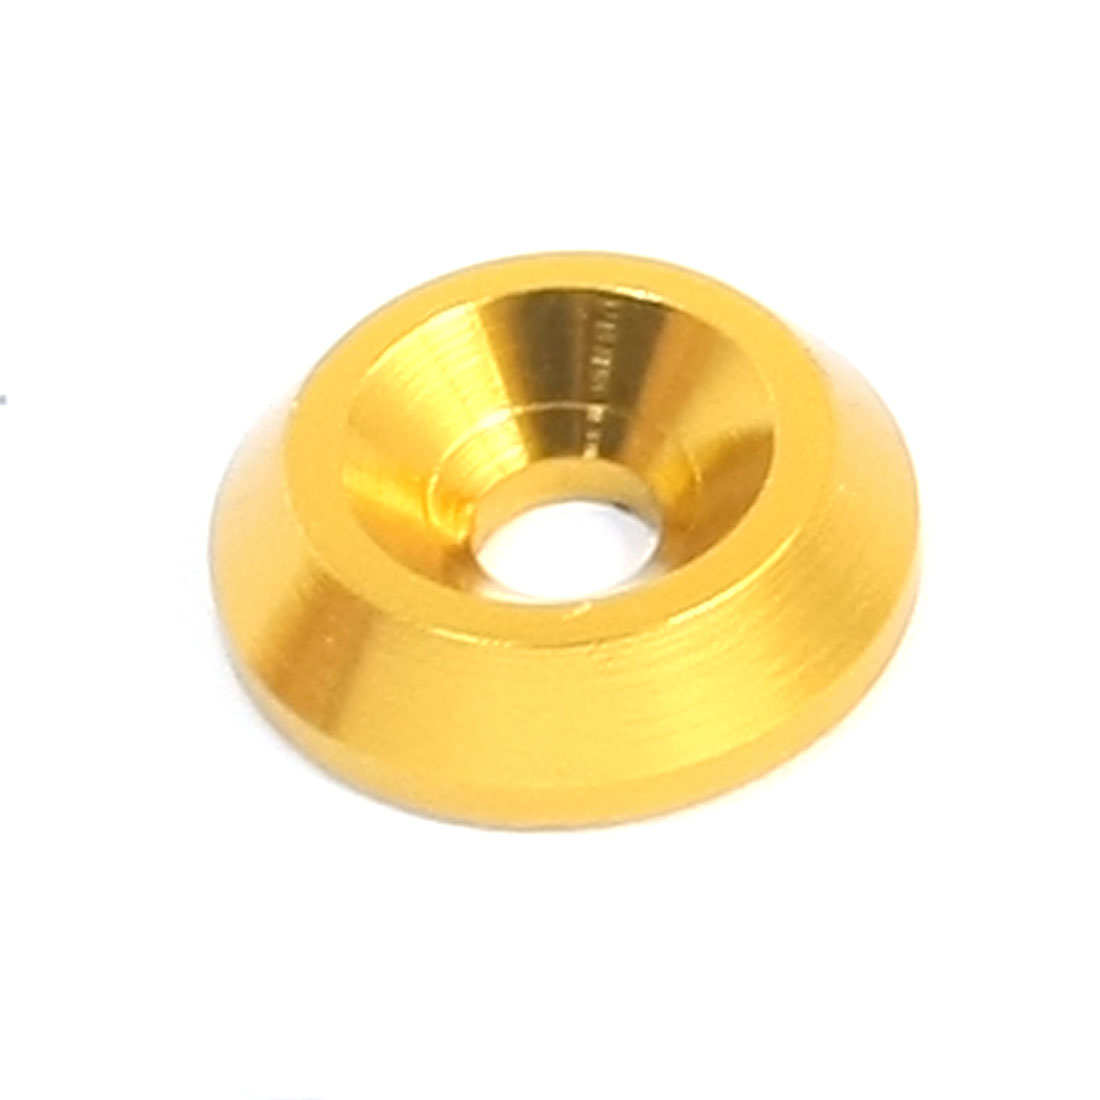 3mm x 12mm x 3mm Gold Tone Aluminium Alloy RC Wheel Spacer Washer Adaptor